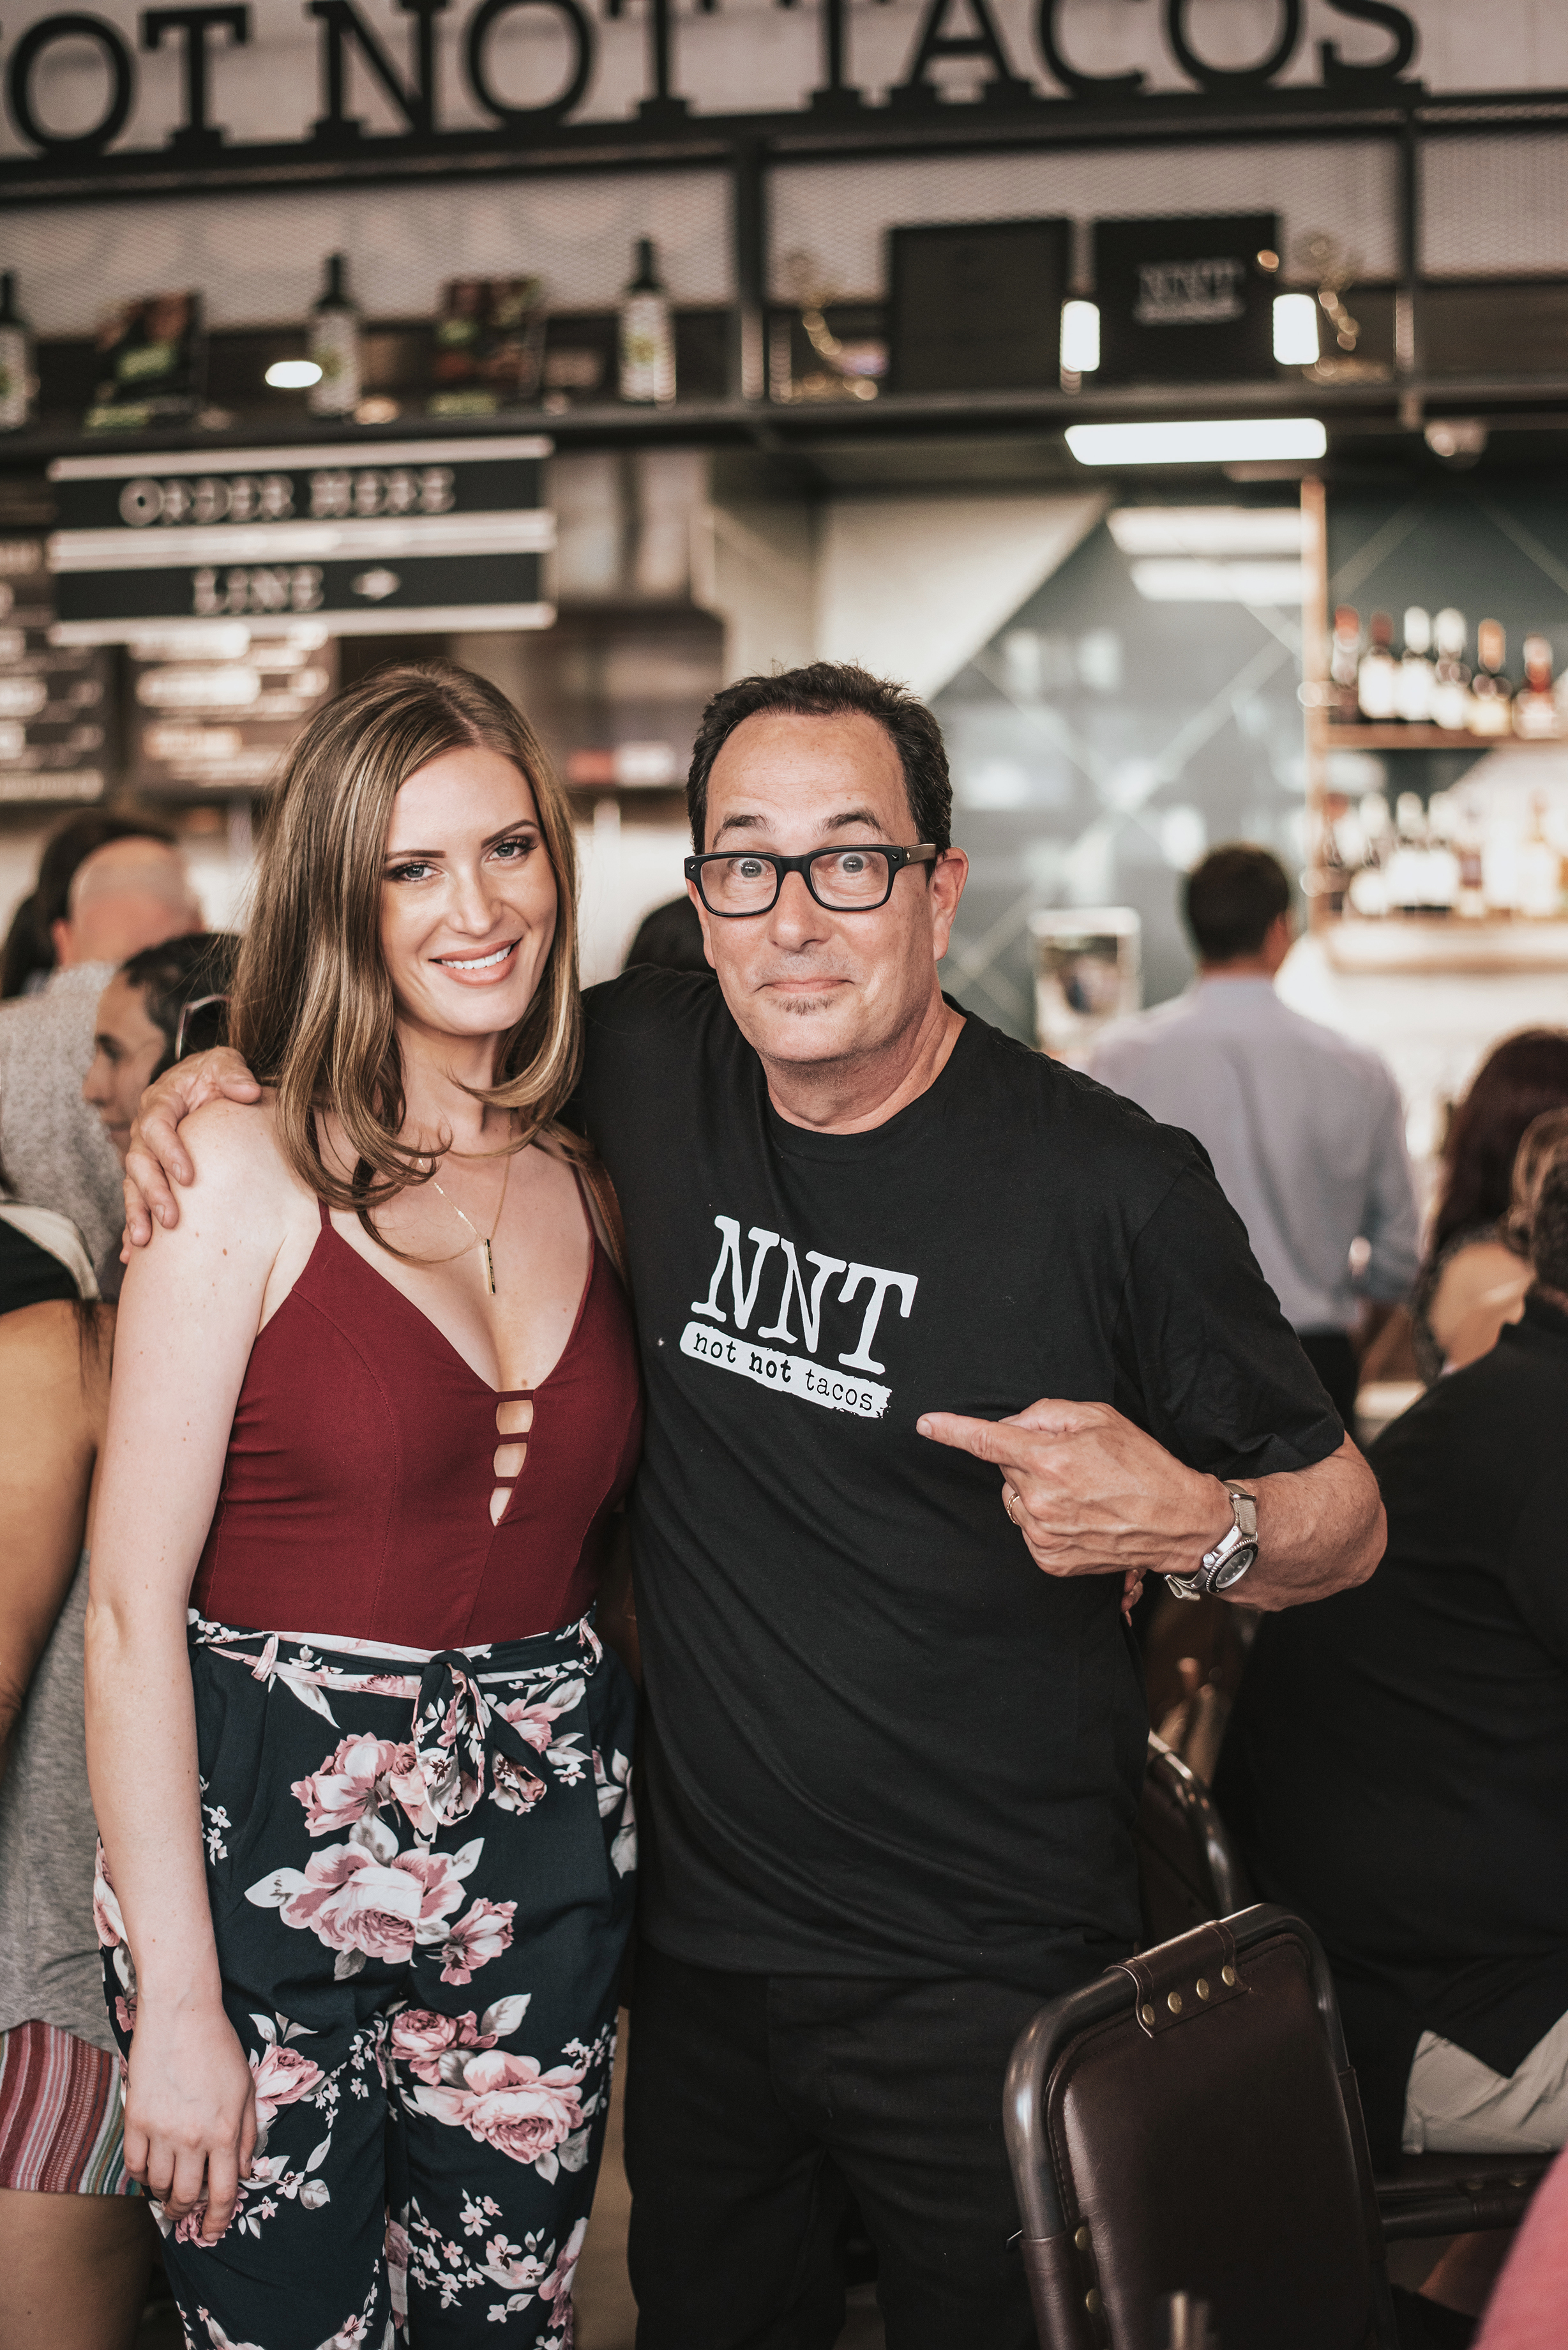 Me with Sam The Cooking Guy at the soft opening of the Little Italy Food Hall